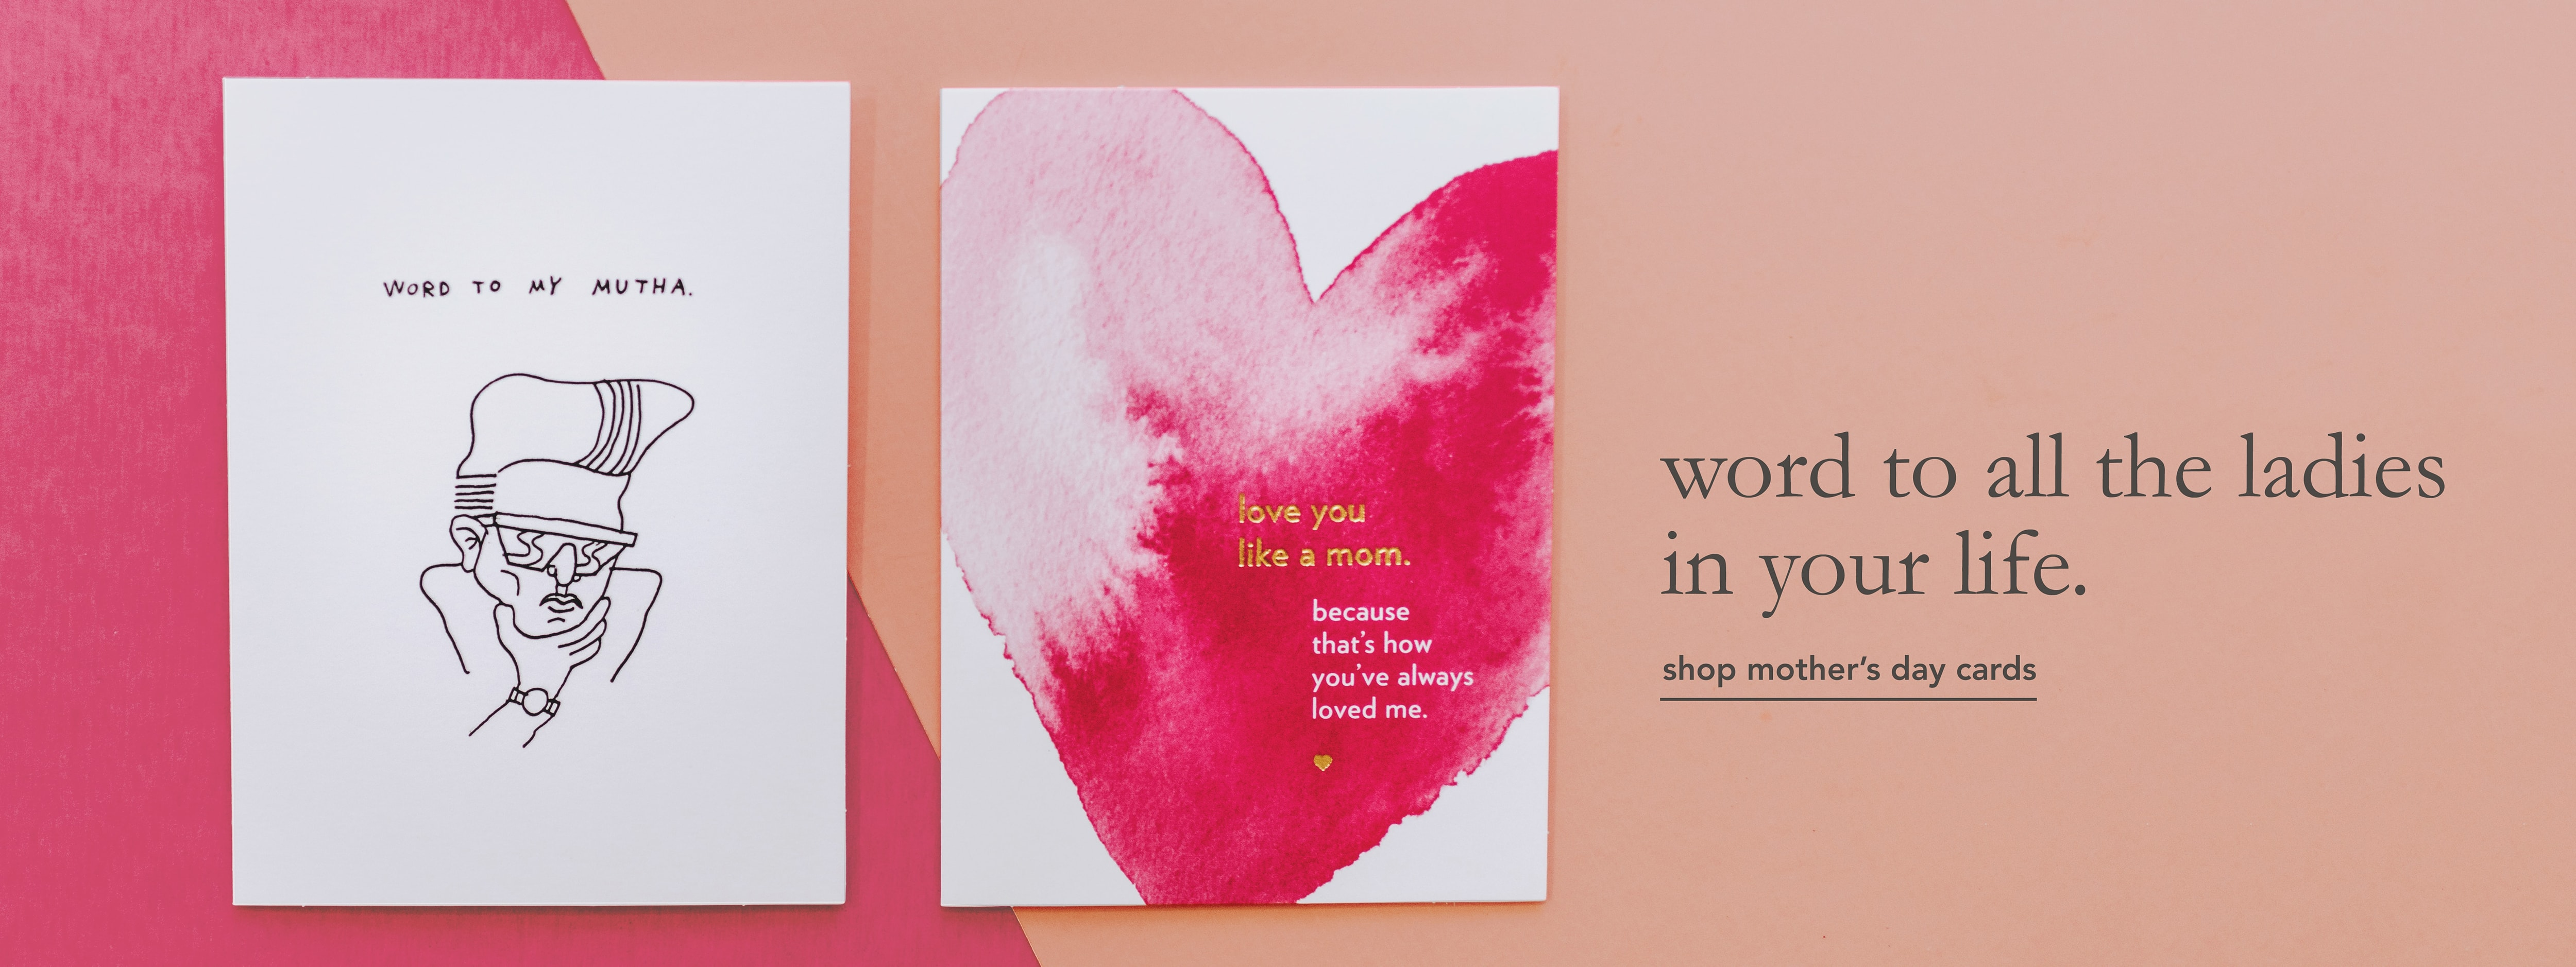 word to my mutha and love you like a mom mother's day cards. shop mother's day cards